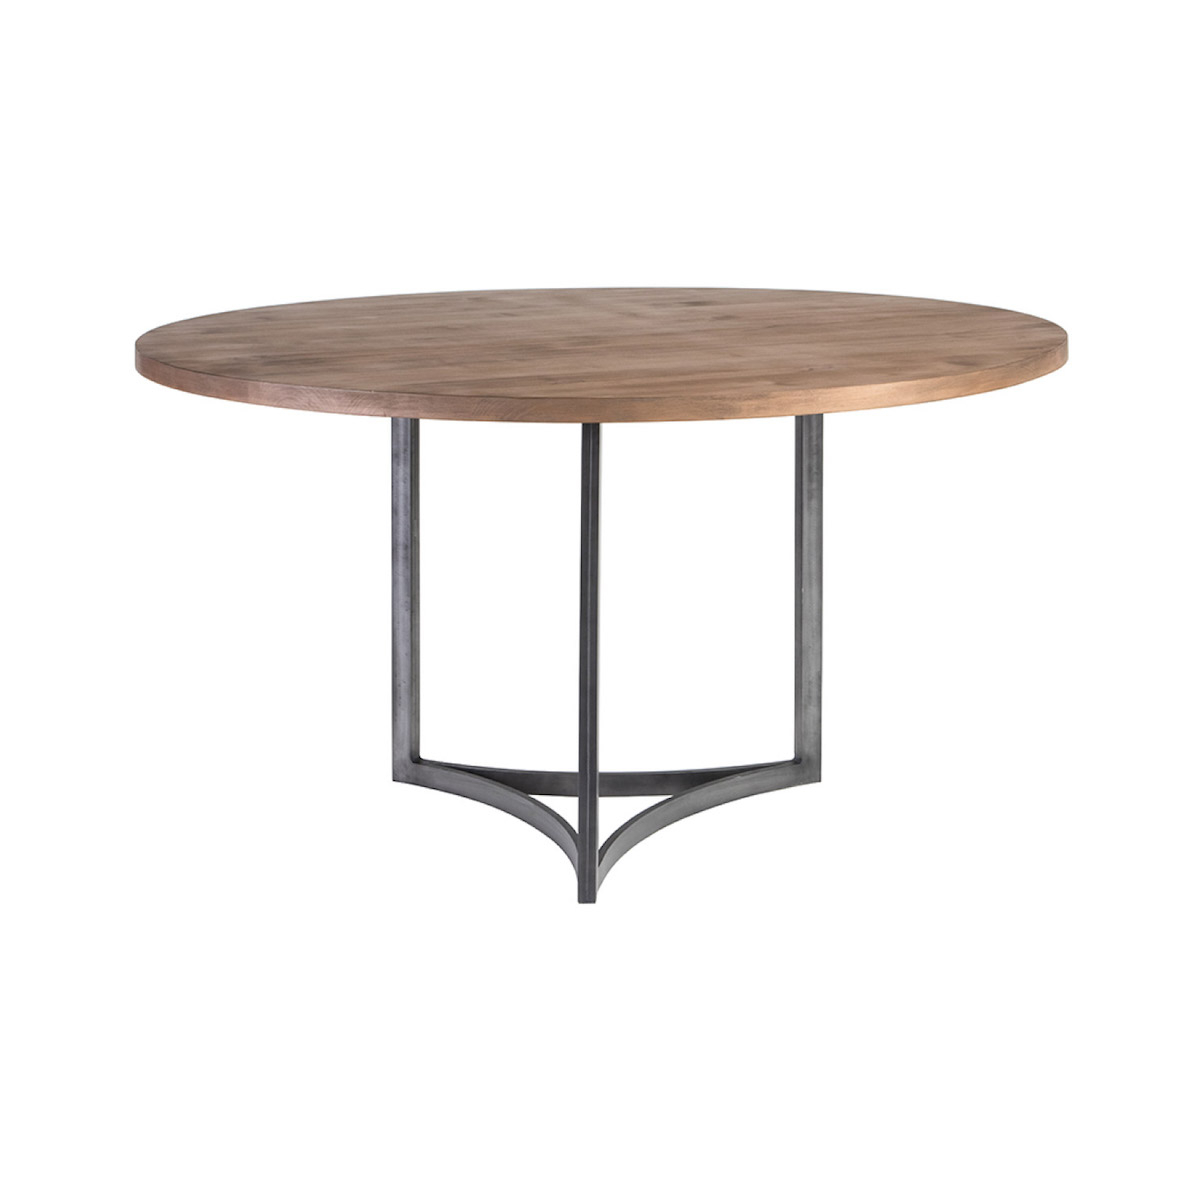 Widely Used Manhattan Round Dining Table • Redford House Pertaining To Avery Round Dining Tables (View 22 of 25)